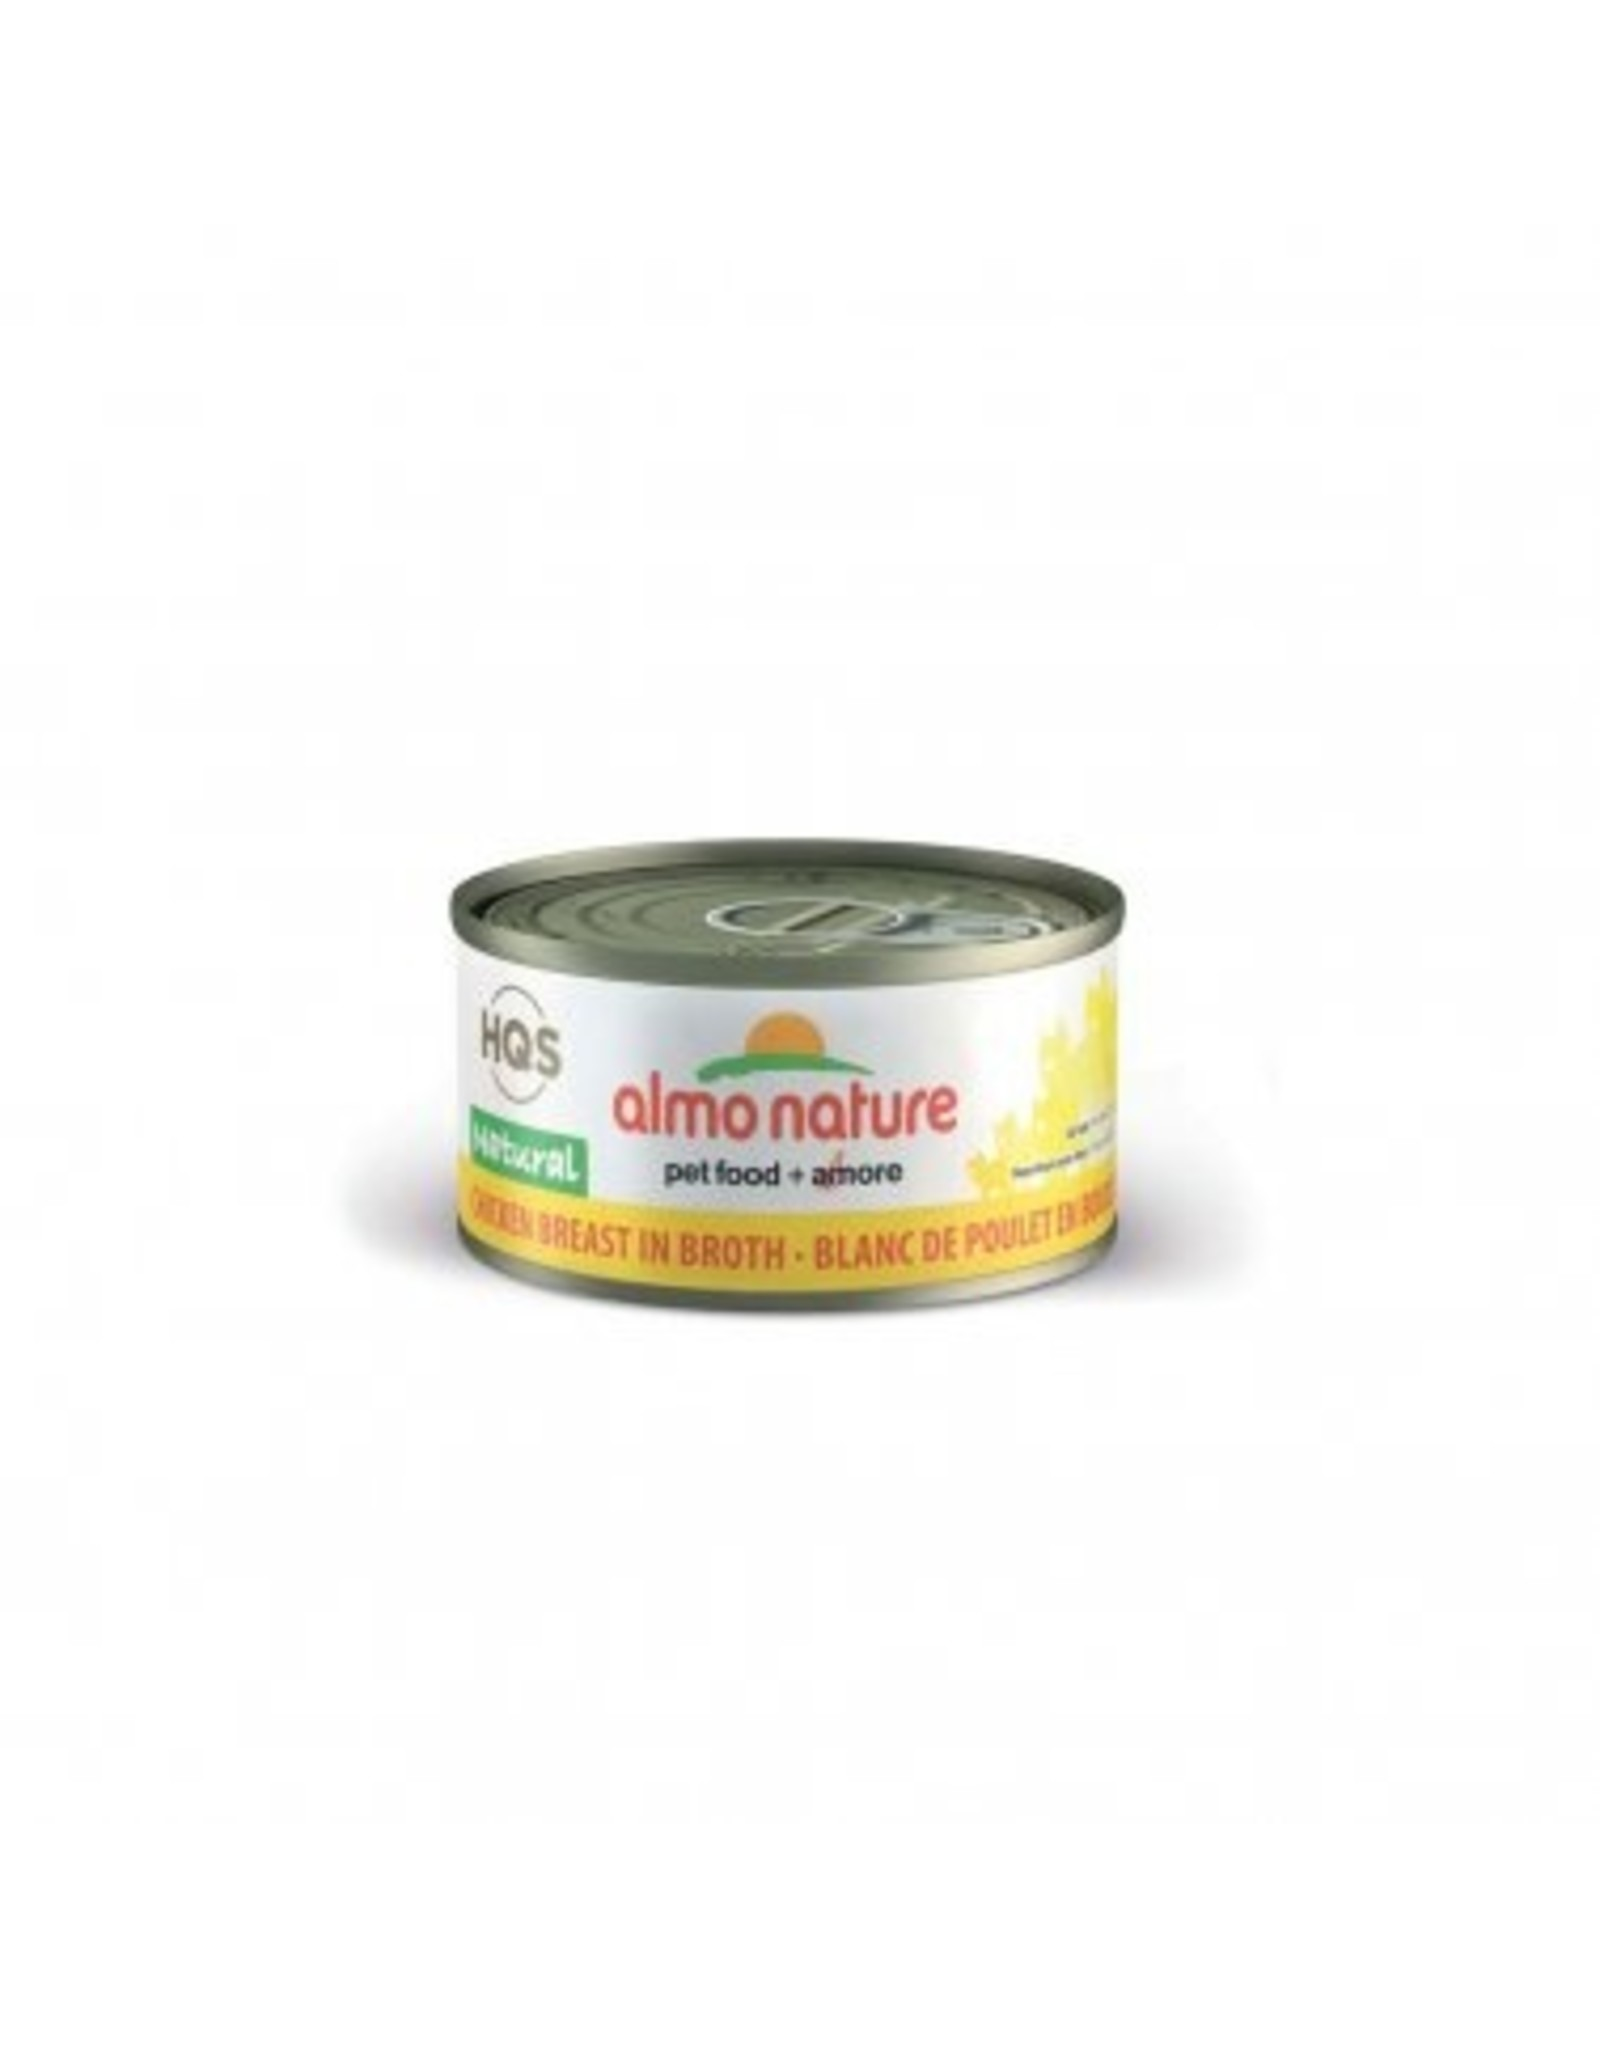 Almo Nature Almo Nature HQS Natural Chicken Breast in Broth Cat Food 2.47oz